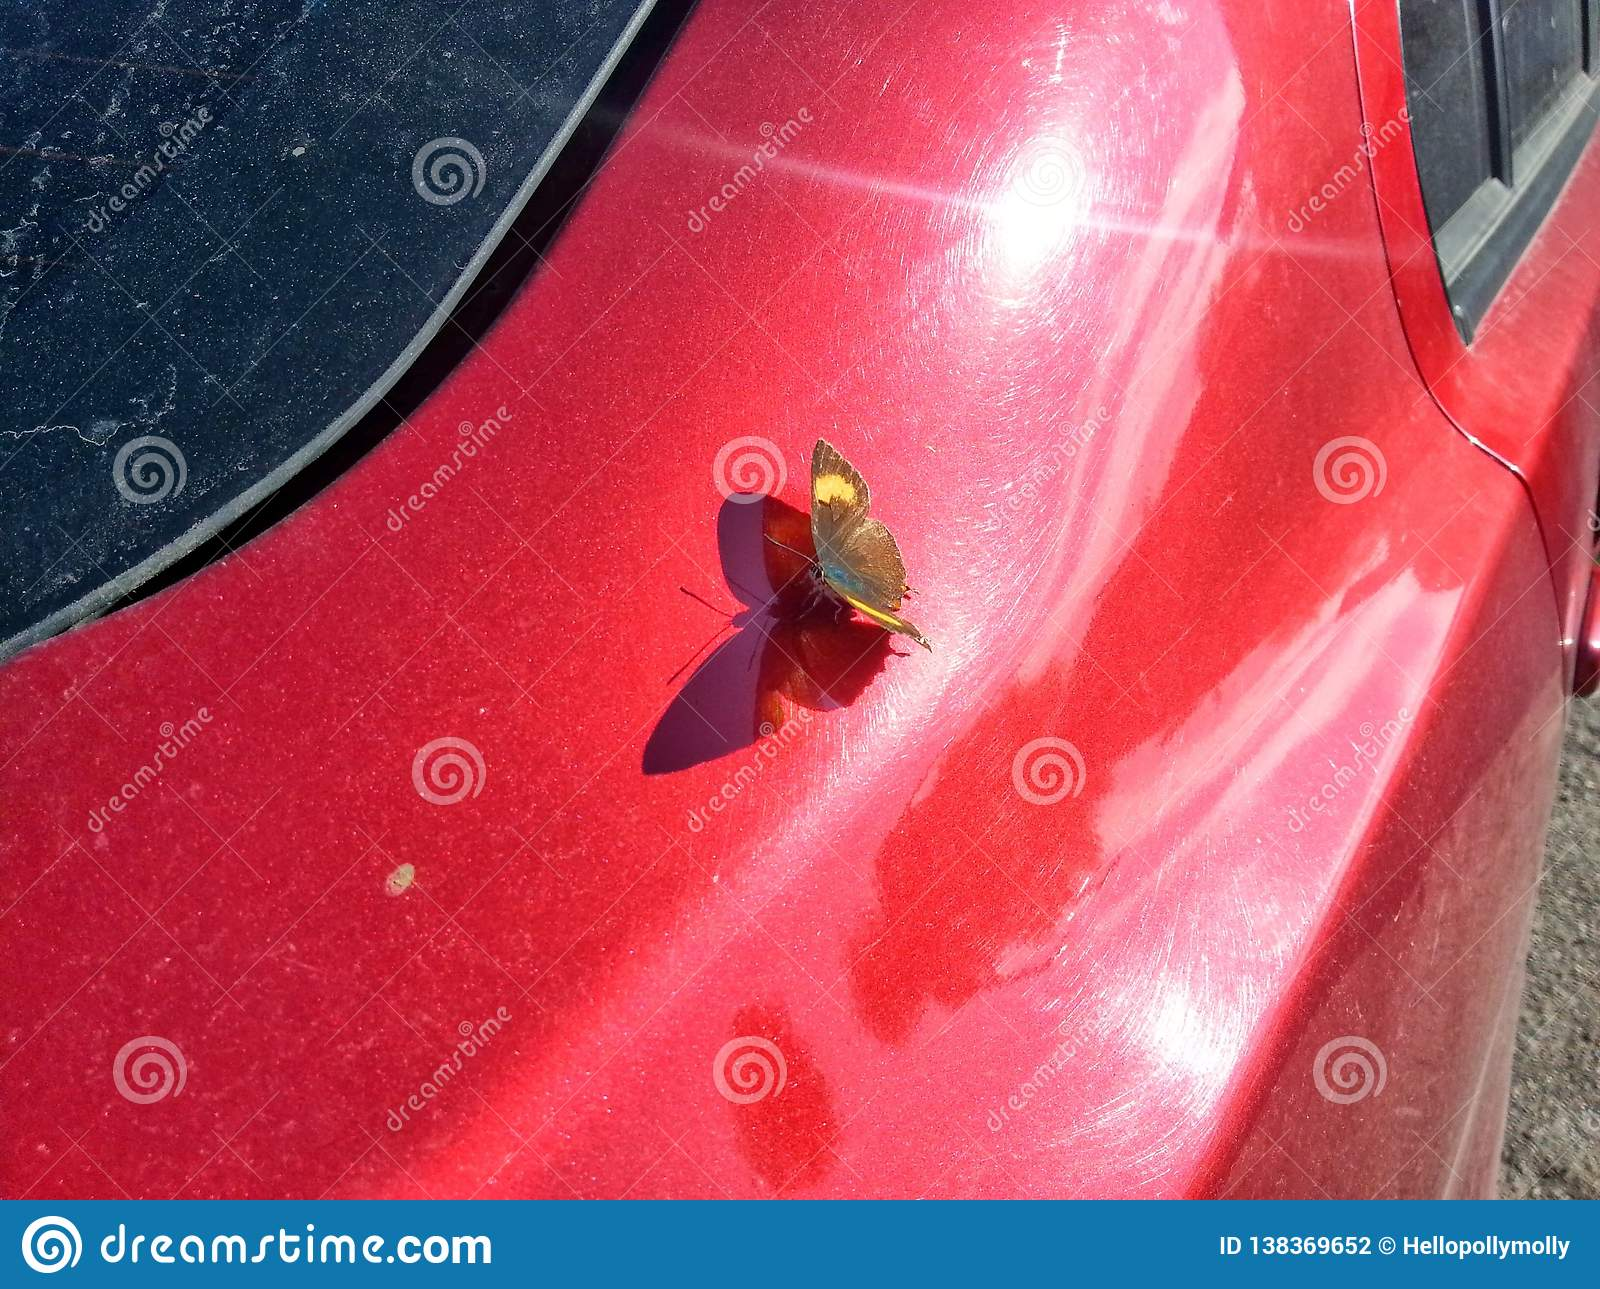 A butterfly on a red car and sun light